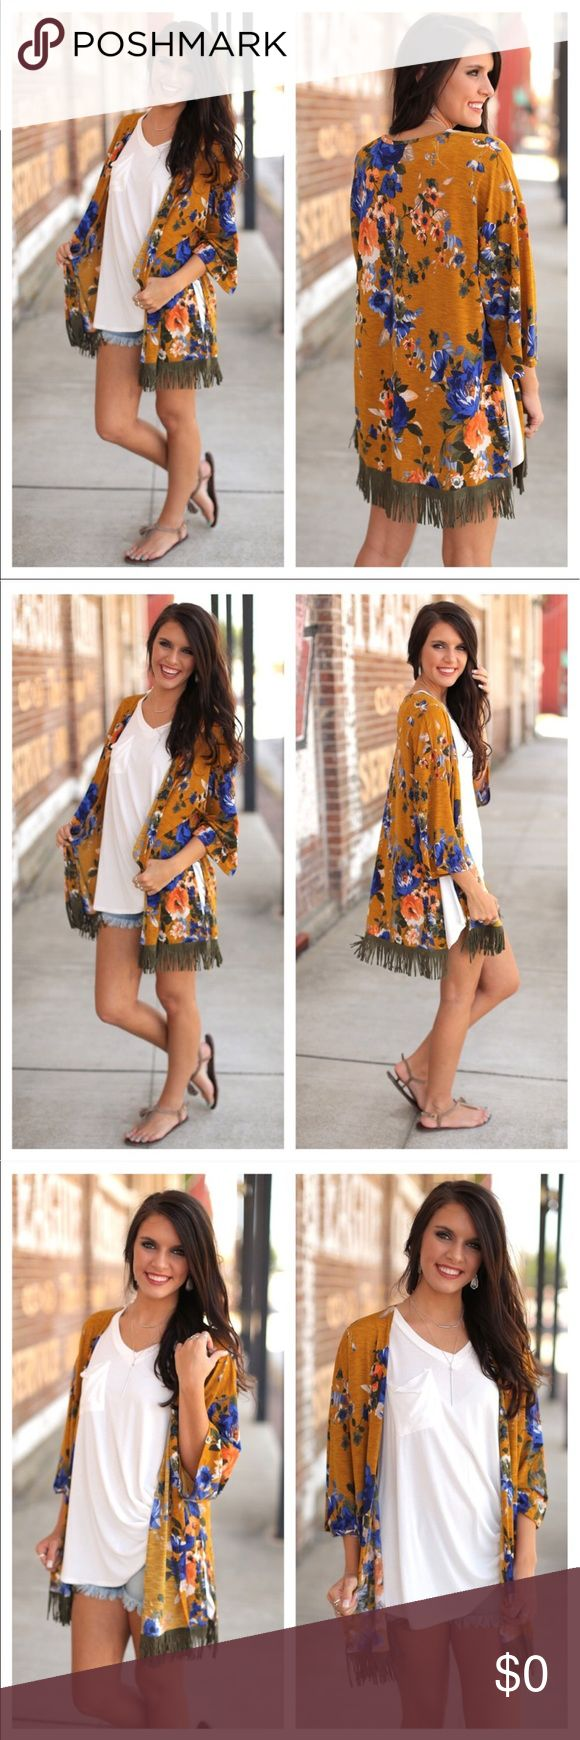 COMING SOON! Boho Chic Floral Fringe Kimono S,M,L Boho chick Floral fringe Kimono!!  NWT yellow & green Floral print  COMING SOON  SIZE S, M, L Sweaters Cardigans